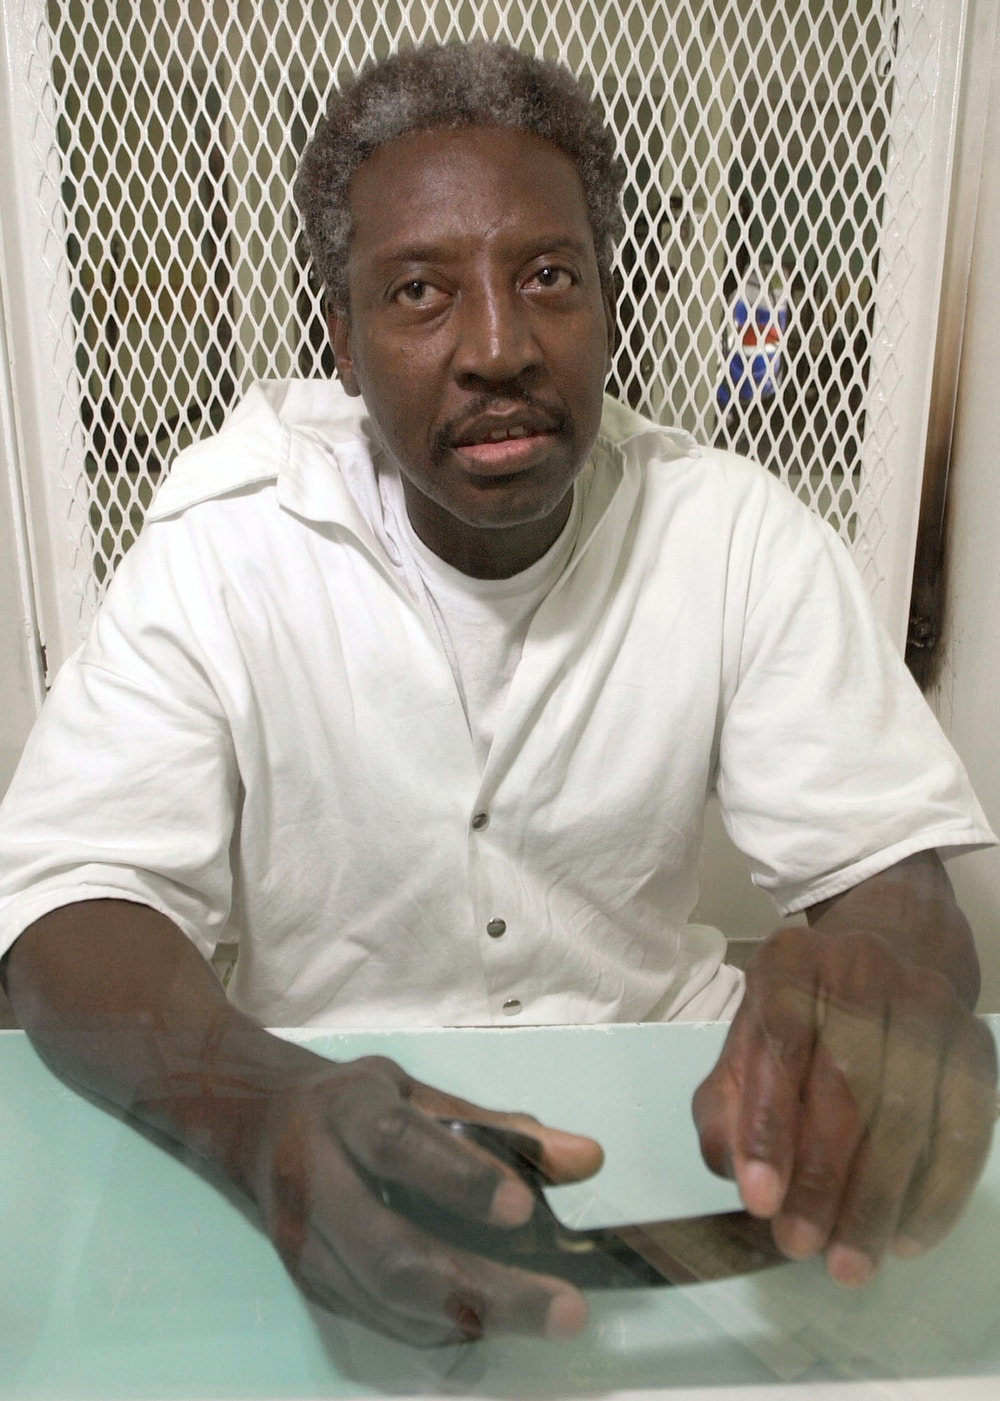 **FILE** Death row inmate Thomas Miller-El, sits in a visitation cell at the Texas Department of Criminal Justice's the Polunsky Unit in Livingston, Texas, in a  Feb. 20, 2002 photo.  Miller- El, who was on death row for nearly 20 years until the Supreme Court overturned his verdict because of racial discrimination during jury selection has pleaded guilty, Wednesday, March 19, 2008 to the killing for which he was originally sentenced to die. (AP Photo/Brett Coomer, File)